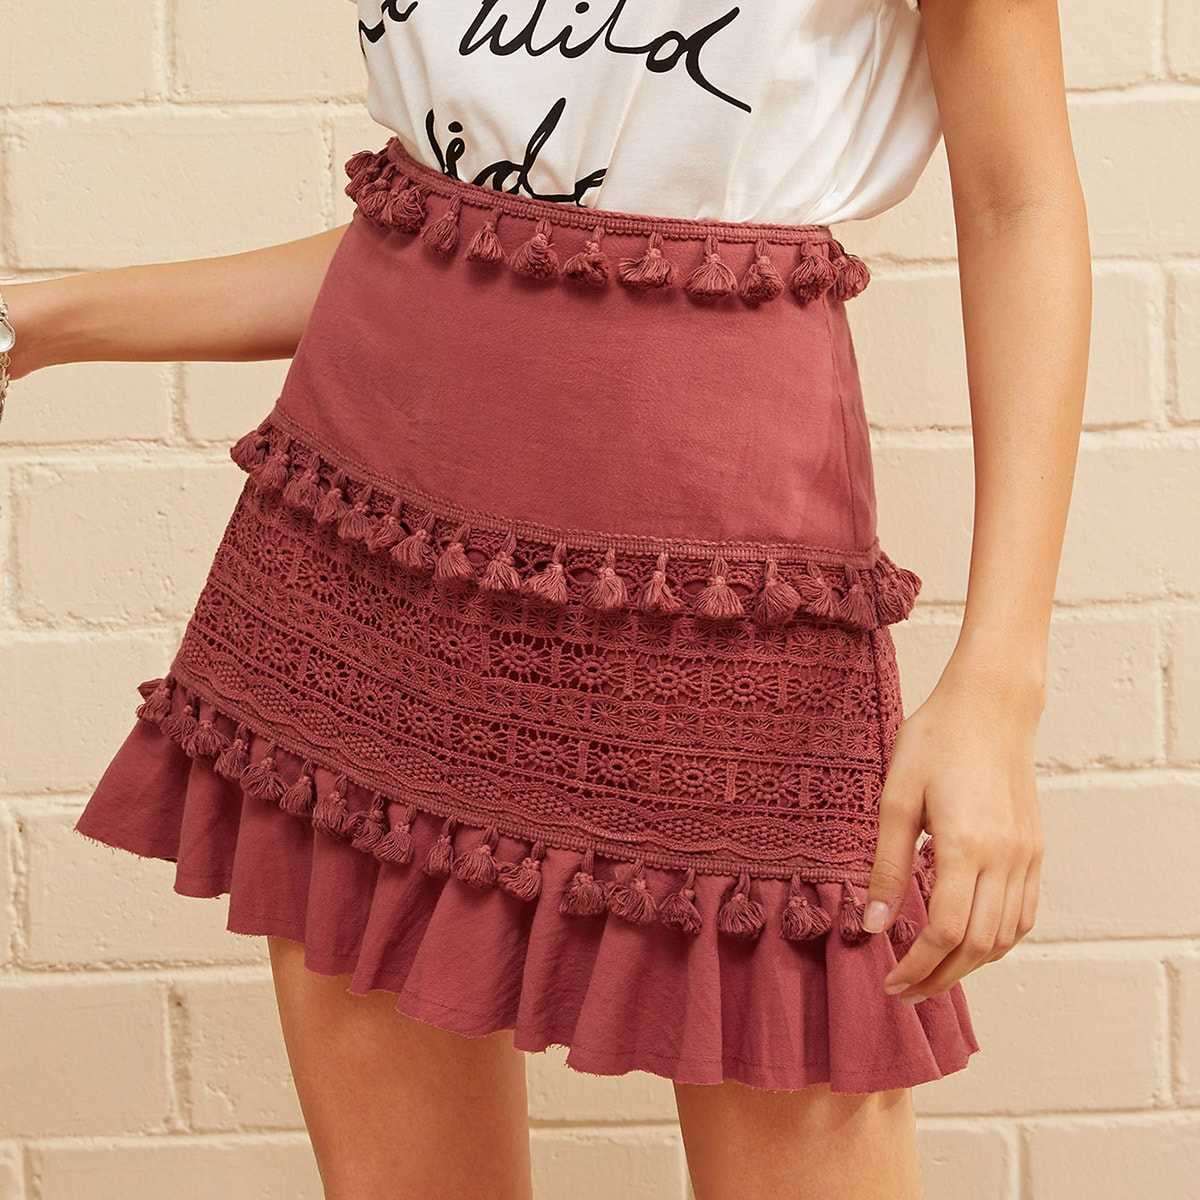 Tassel Trim Guipure Lace Detail Ruffle Skirt in Red by ROMWE on GOOFASH